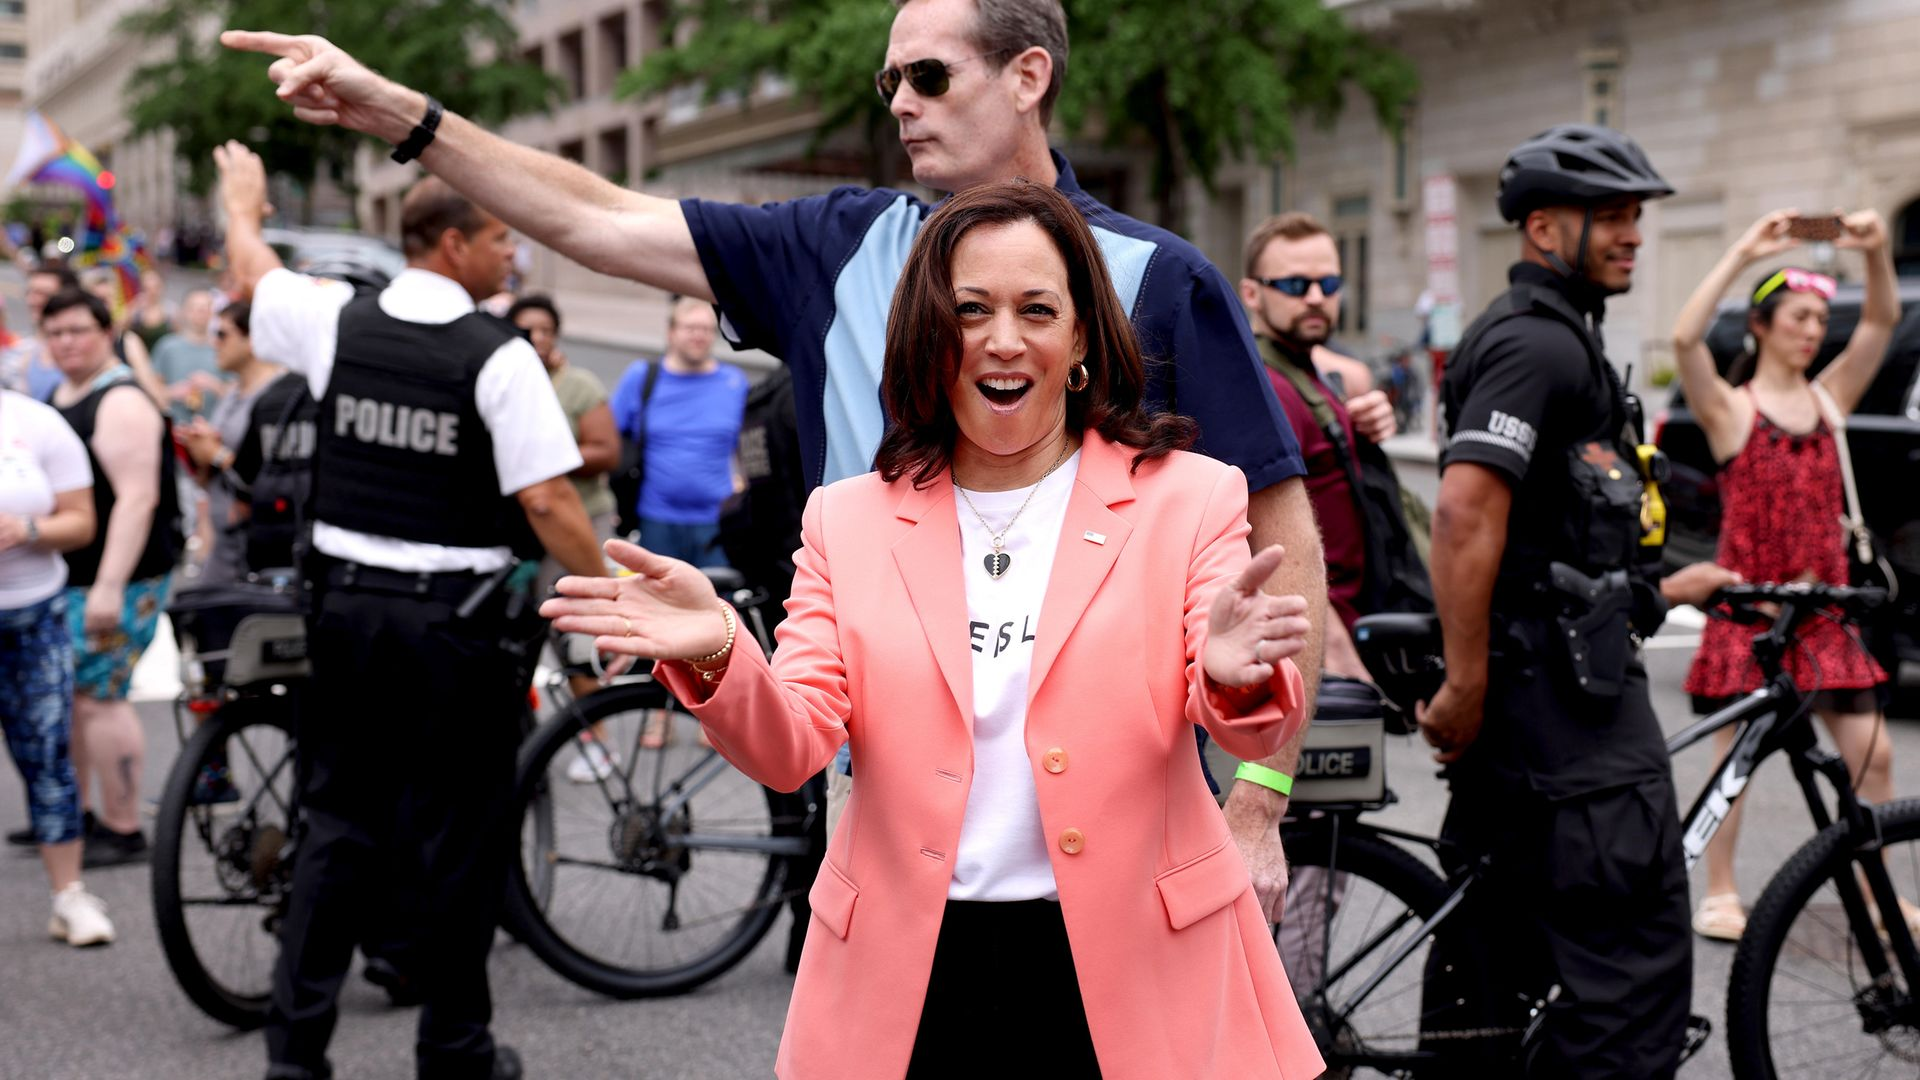 Vice-president  Kamala Harris joins marchers for the Capital Pride Parade on June 12, 2021 in Washington, DC - Credit: Photo by Anna Moneymaker/Getty Images